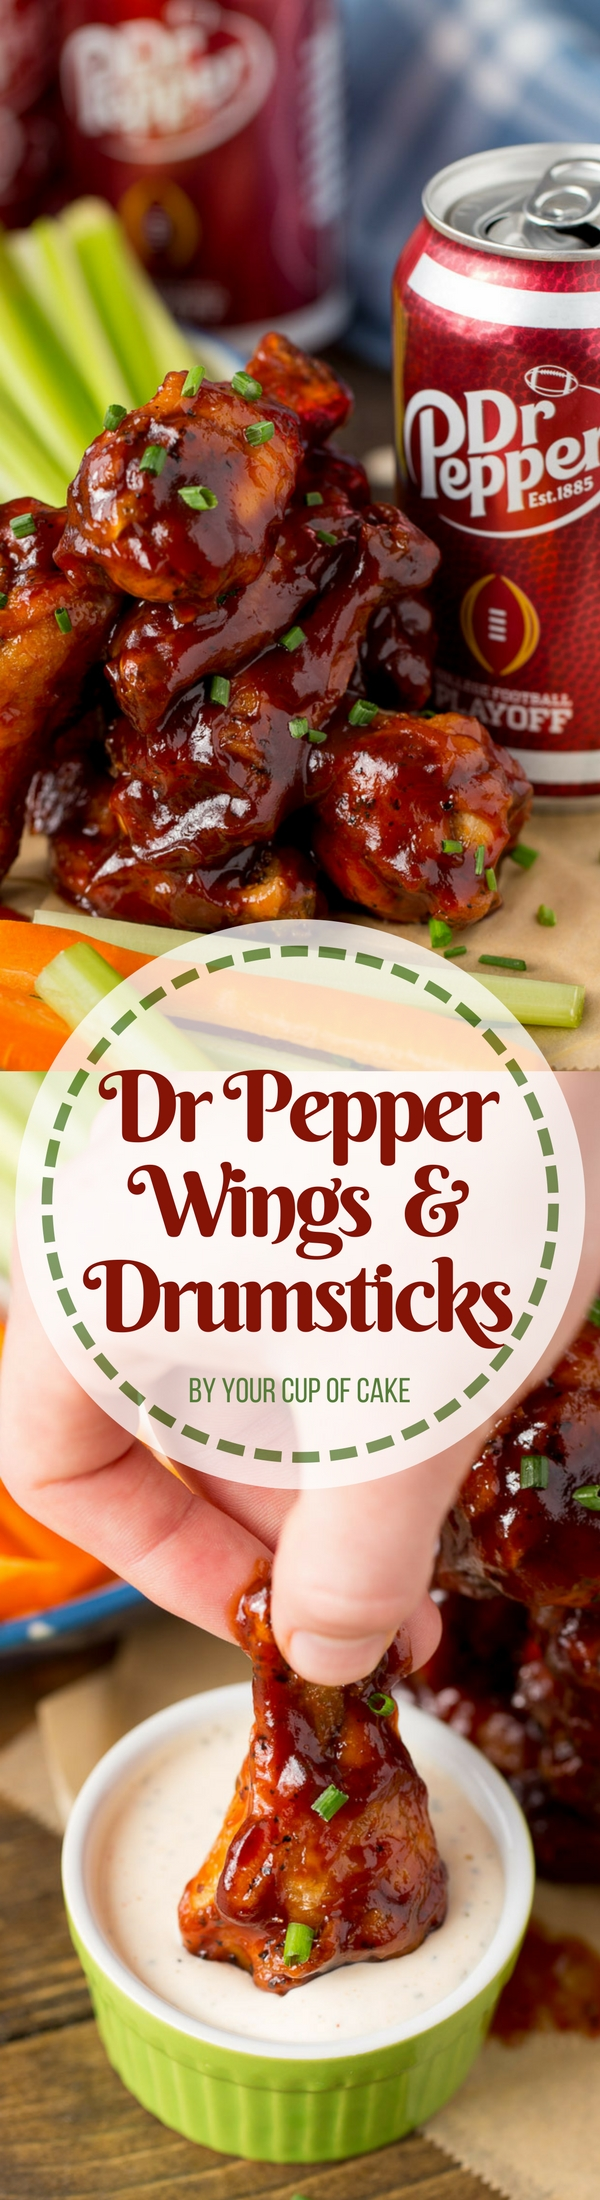 Dr Pepper Wings and Drumsticks is the perfect gameday party food! This Dr Pepper BBQ sauce recipe is awesome!